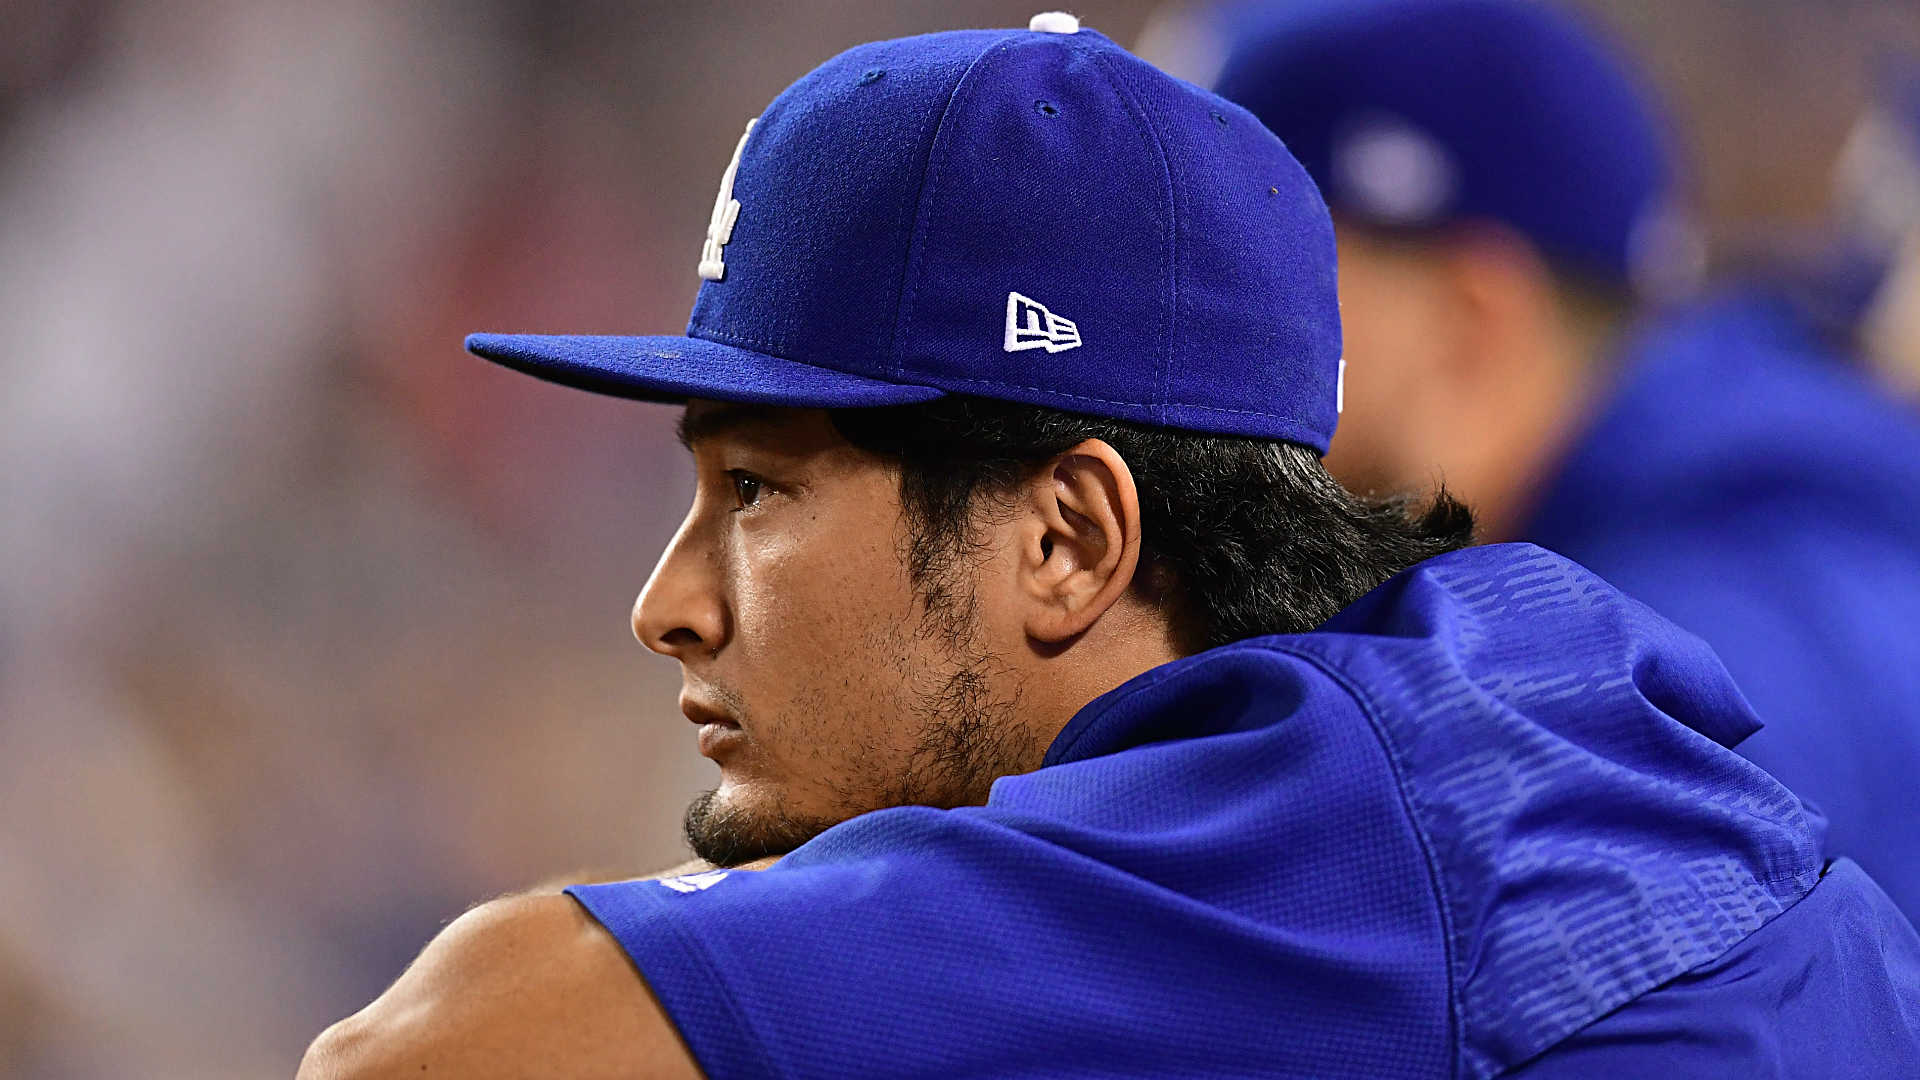 MLB free agents: Yu Darvish adds mystery team to suitor group; some candidates